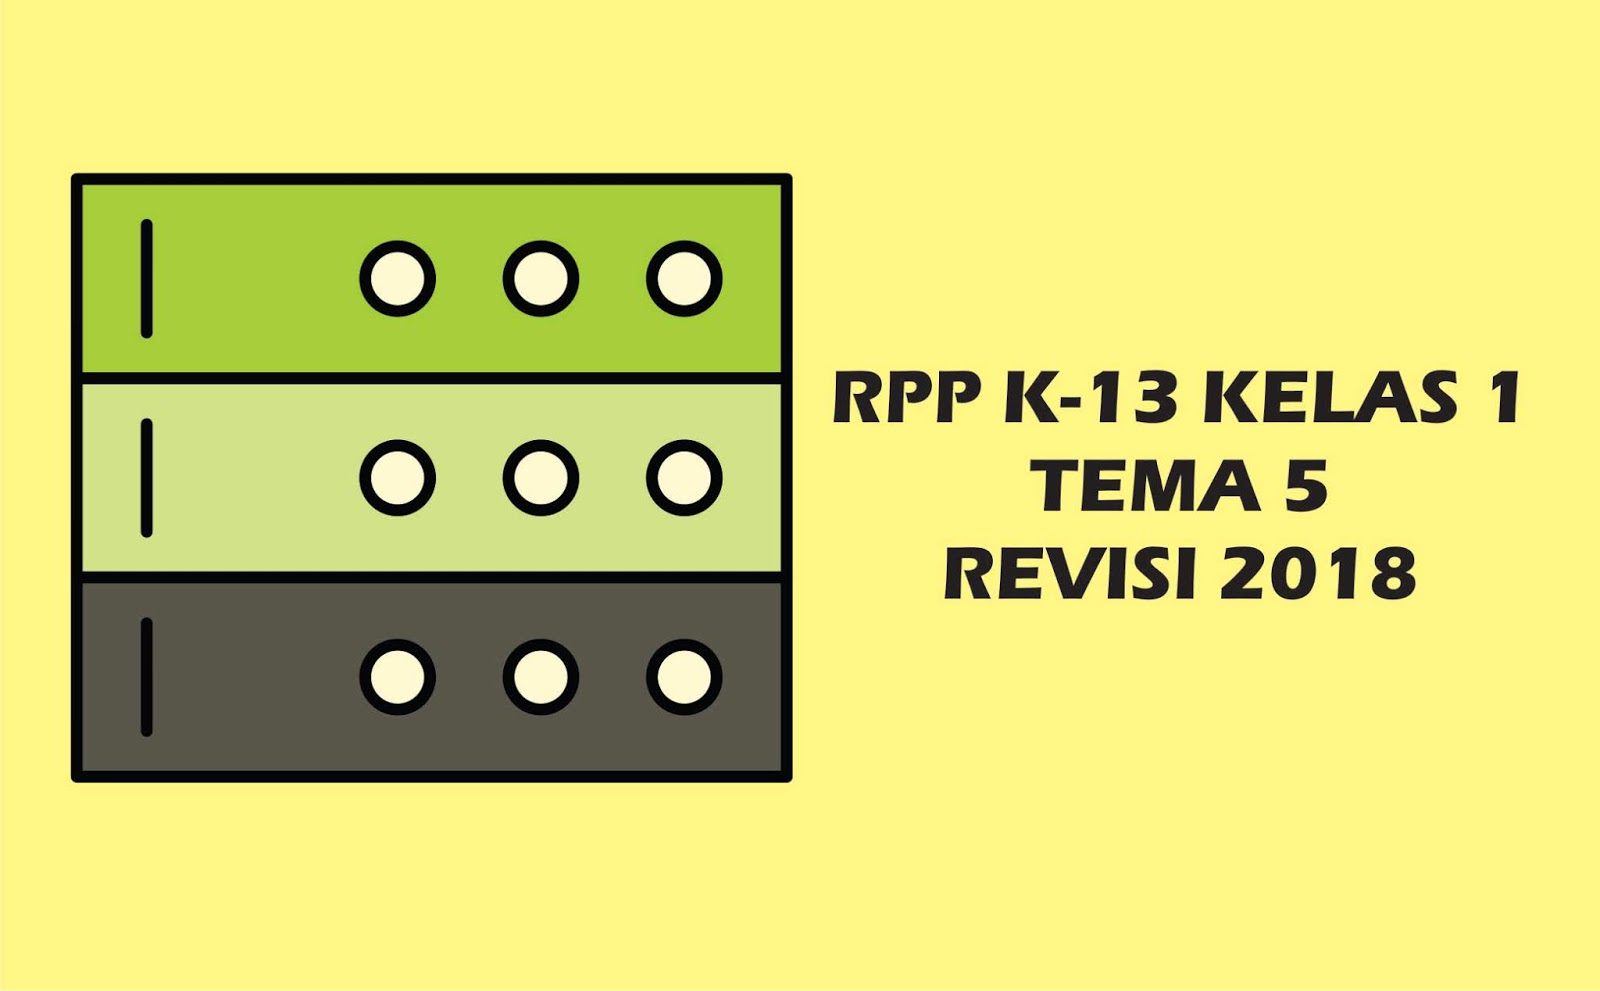 Download Gratis RPP Kelas I Tema 5 K 13 Revisi 2018